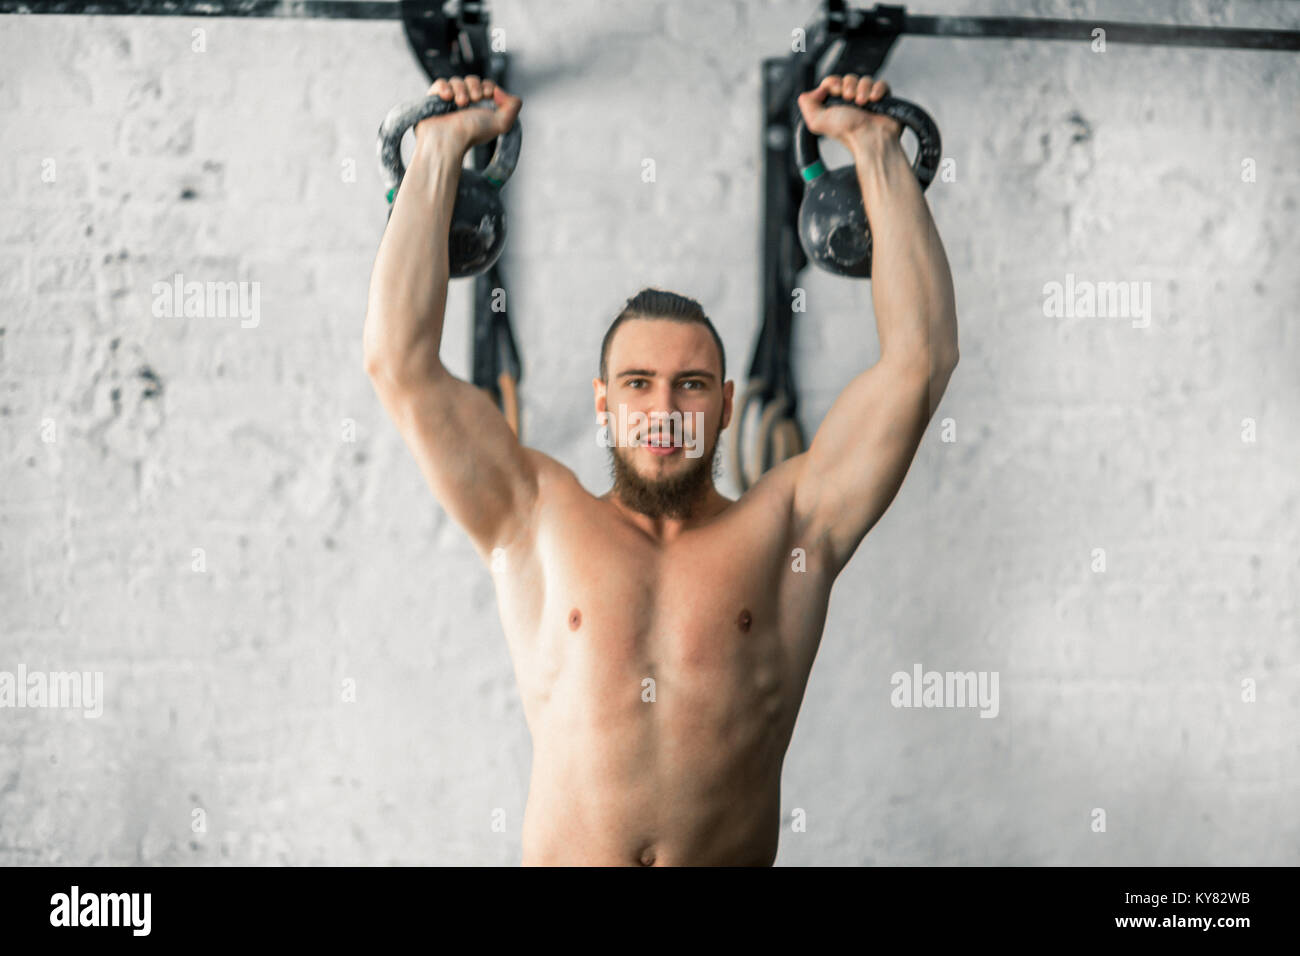 man lifting two kettlebell workout exercise at gym - Stock Image